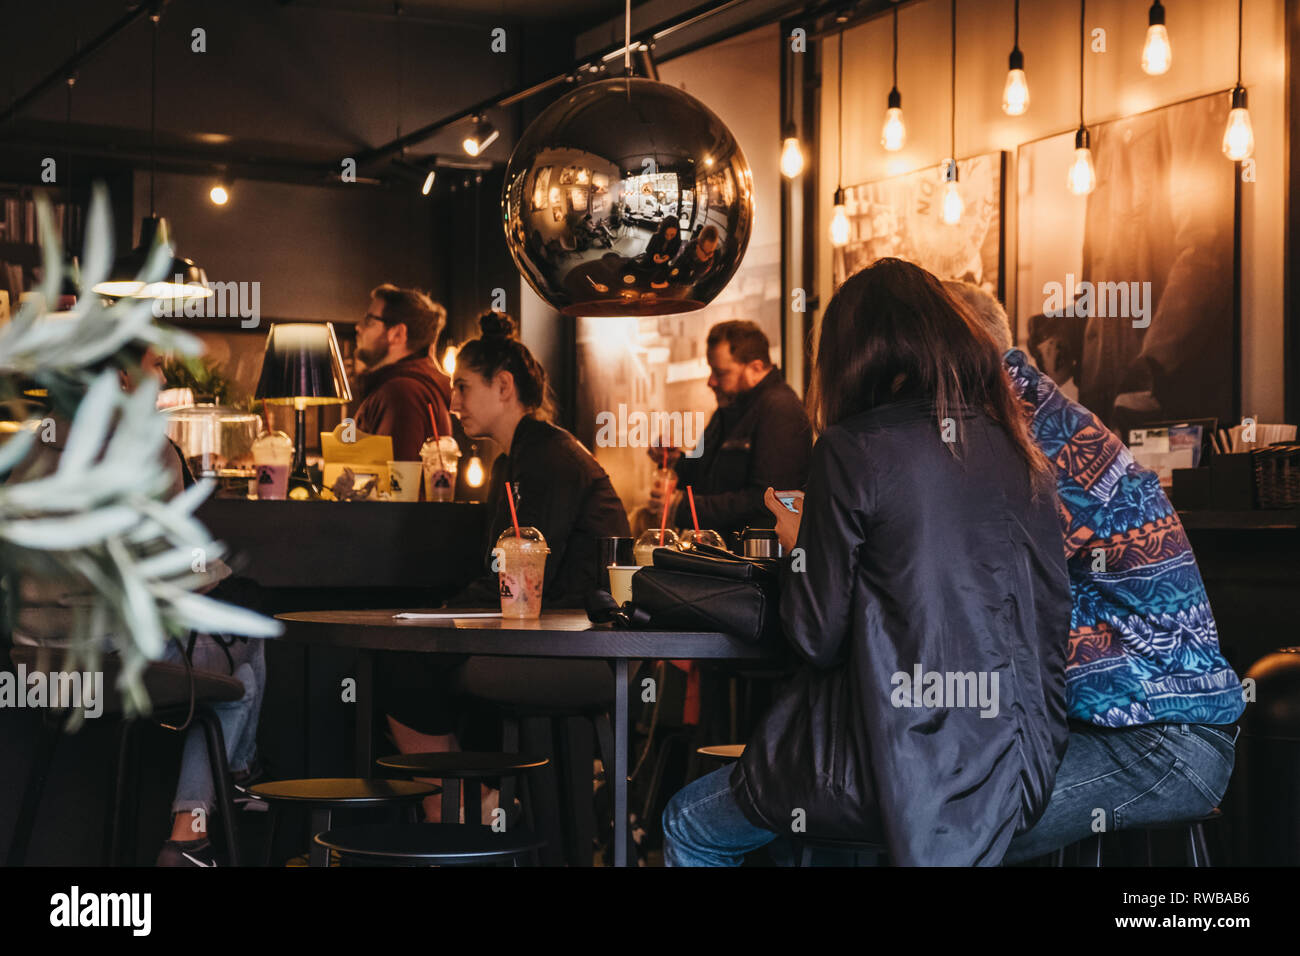 London, UK - March 2, 2019: People having drinks inside Joe and the Juice cafe in Hampstead, an affluent residential area of London favoured by artist - Stock Image